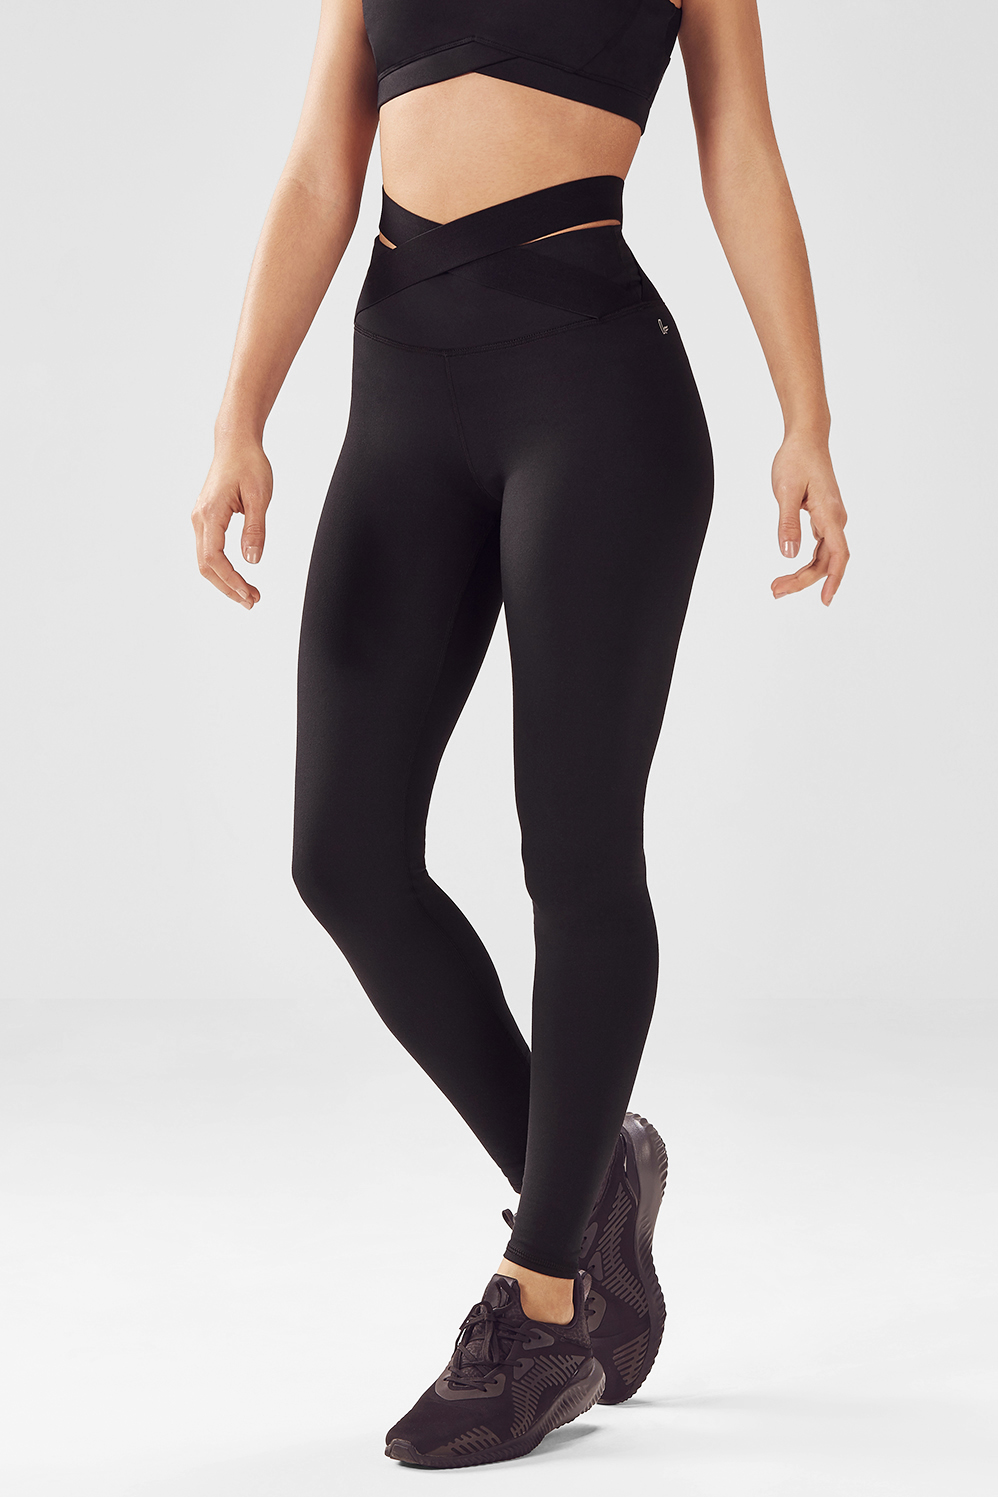 0d9afe17f950fd High-Waisted Statement PowerHold® Leggings - Fabletics